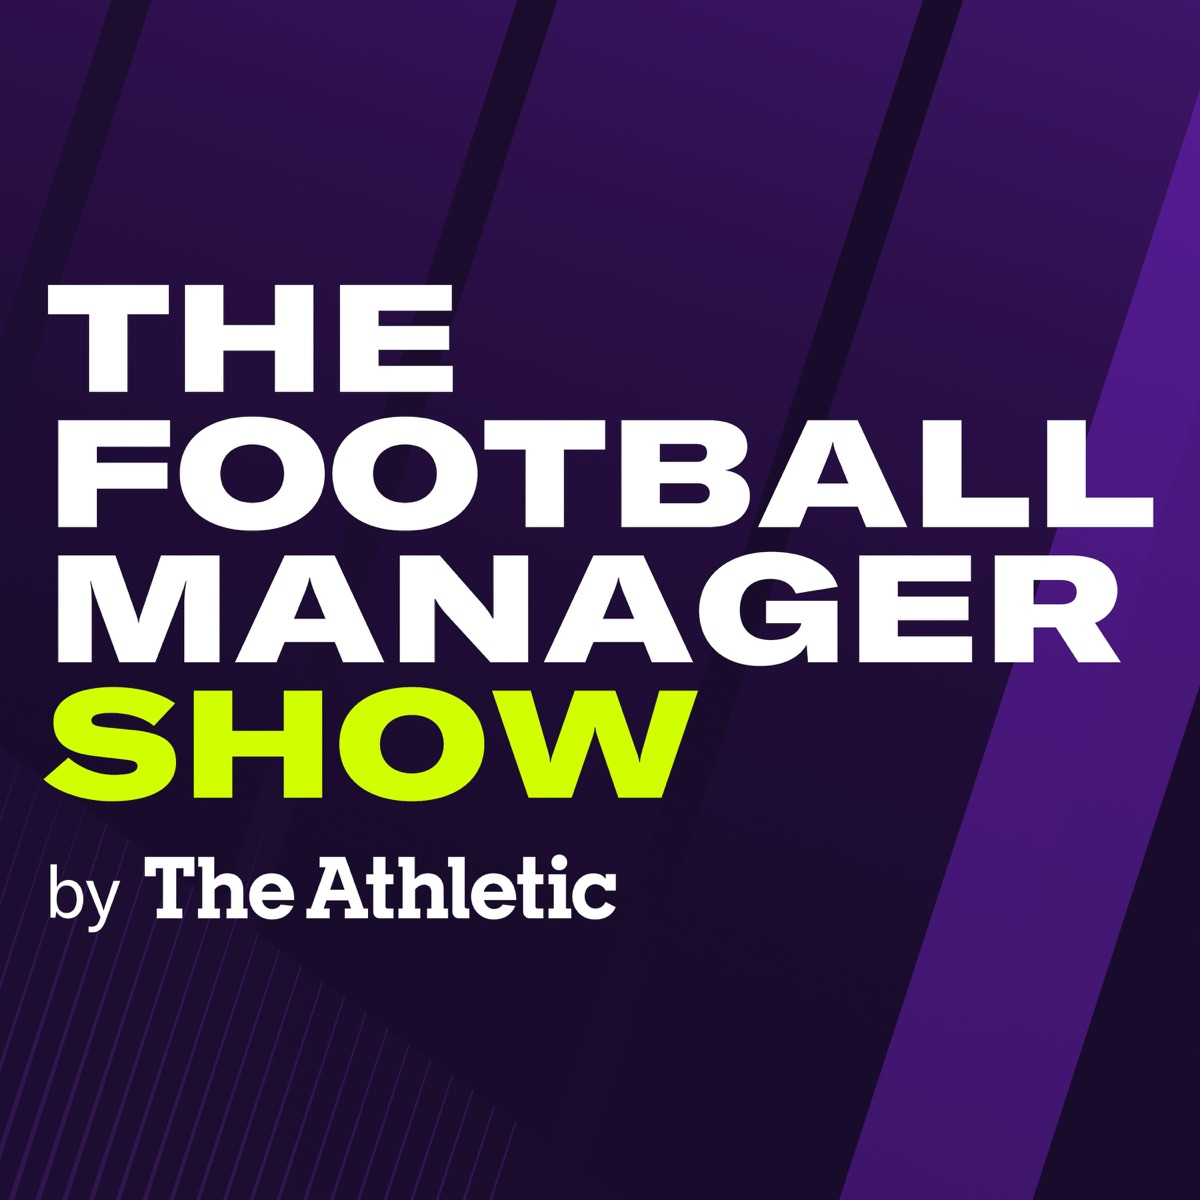 The Football Manager Show - Trailer